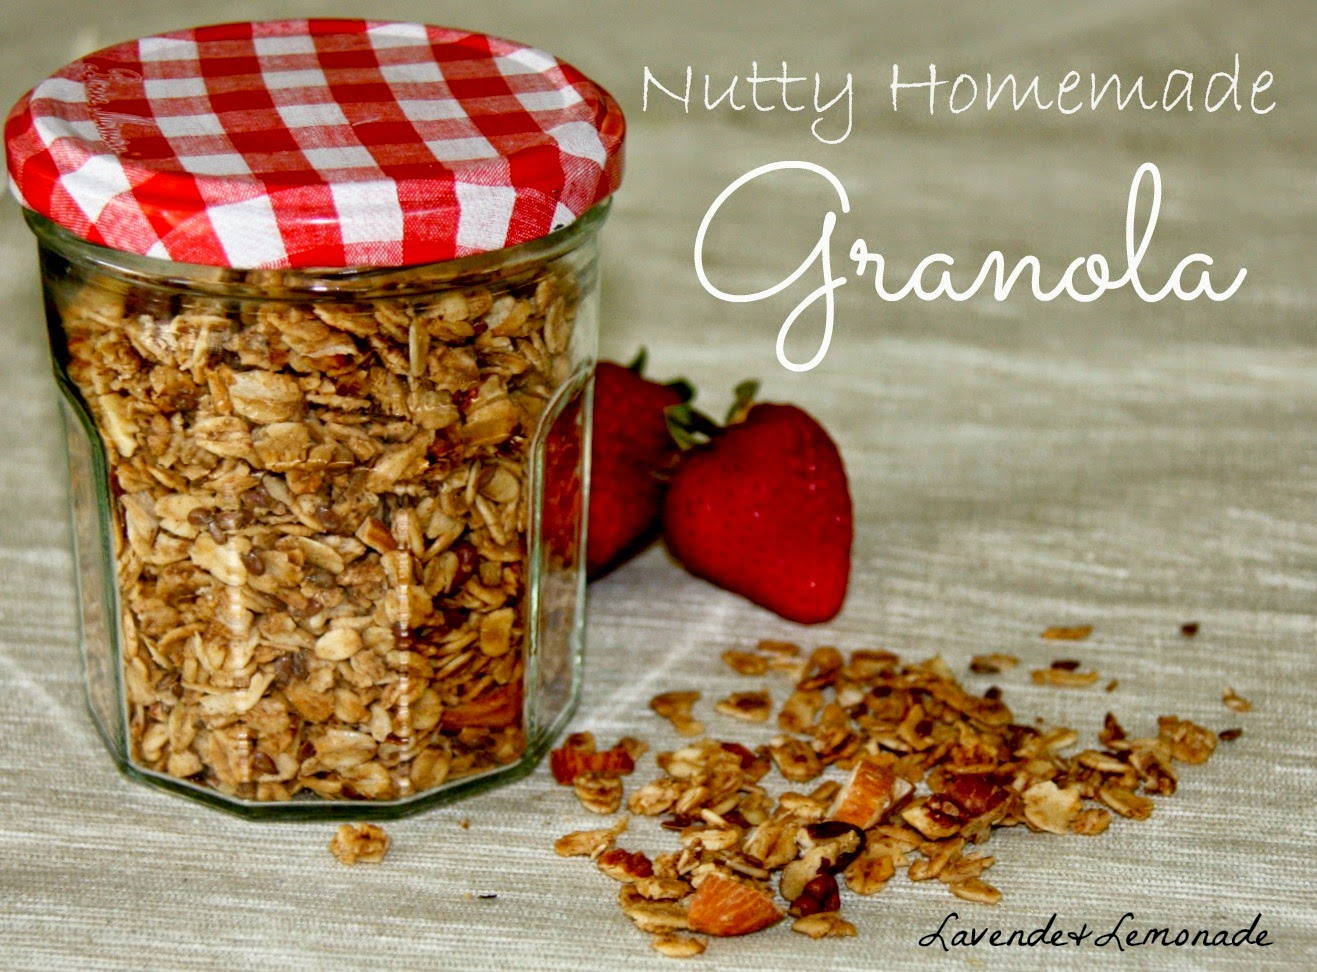 Lavende&Lemonade | Nutty Homemade Granola